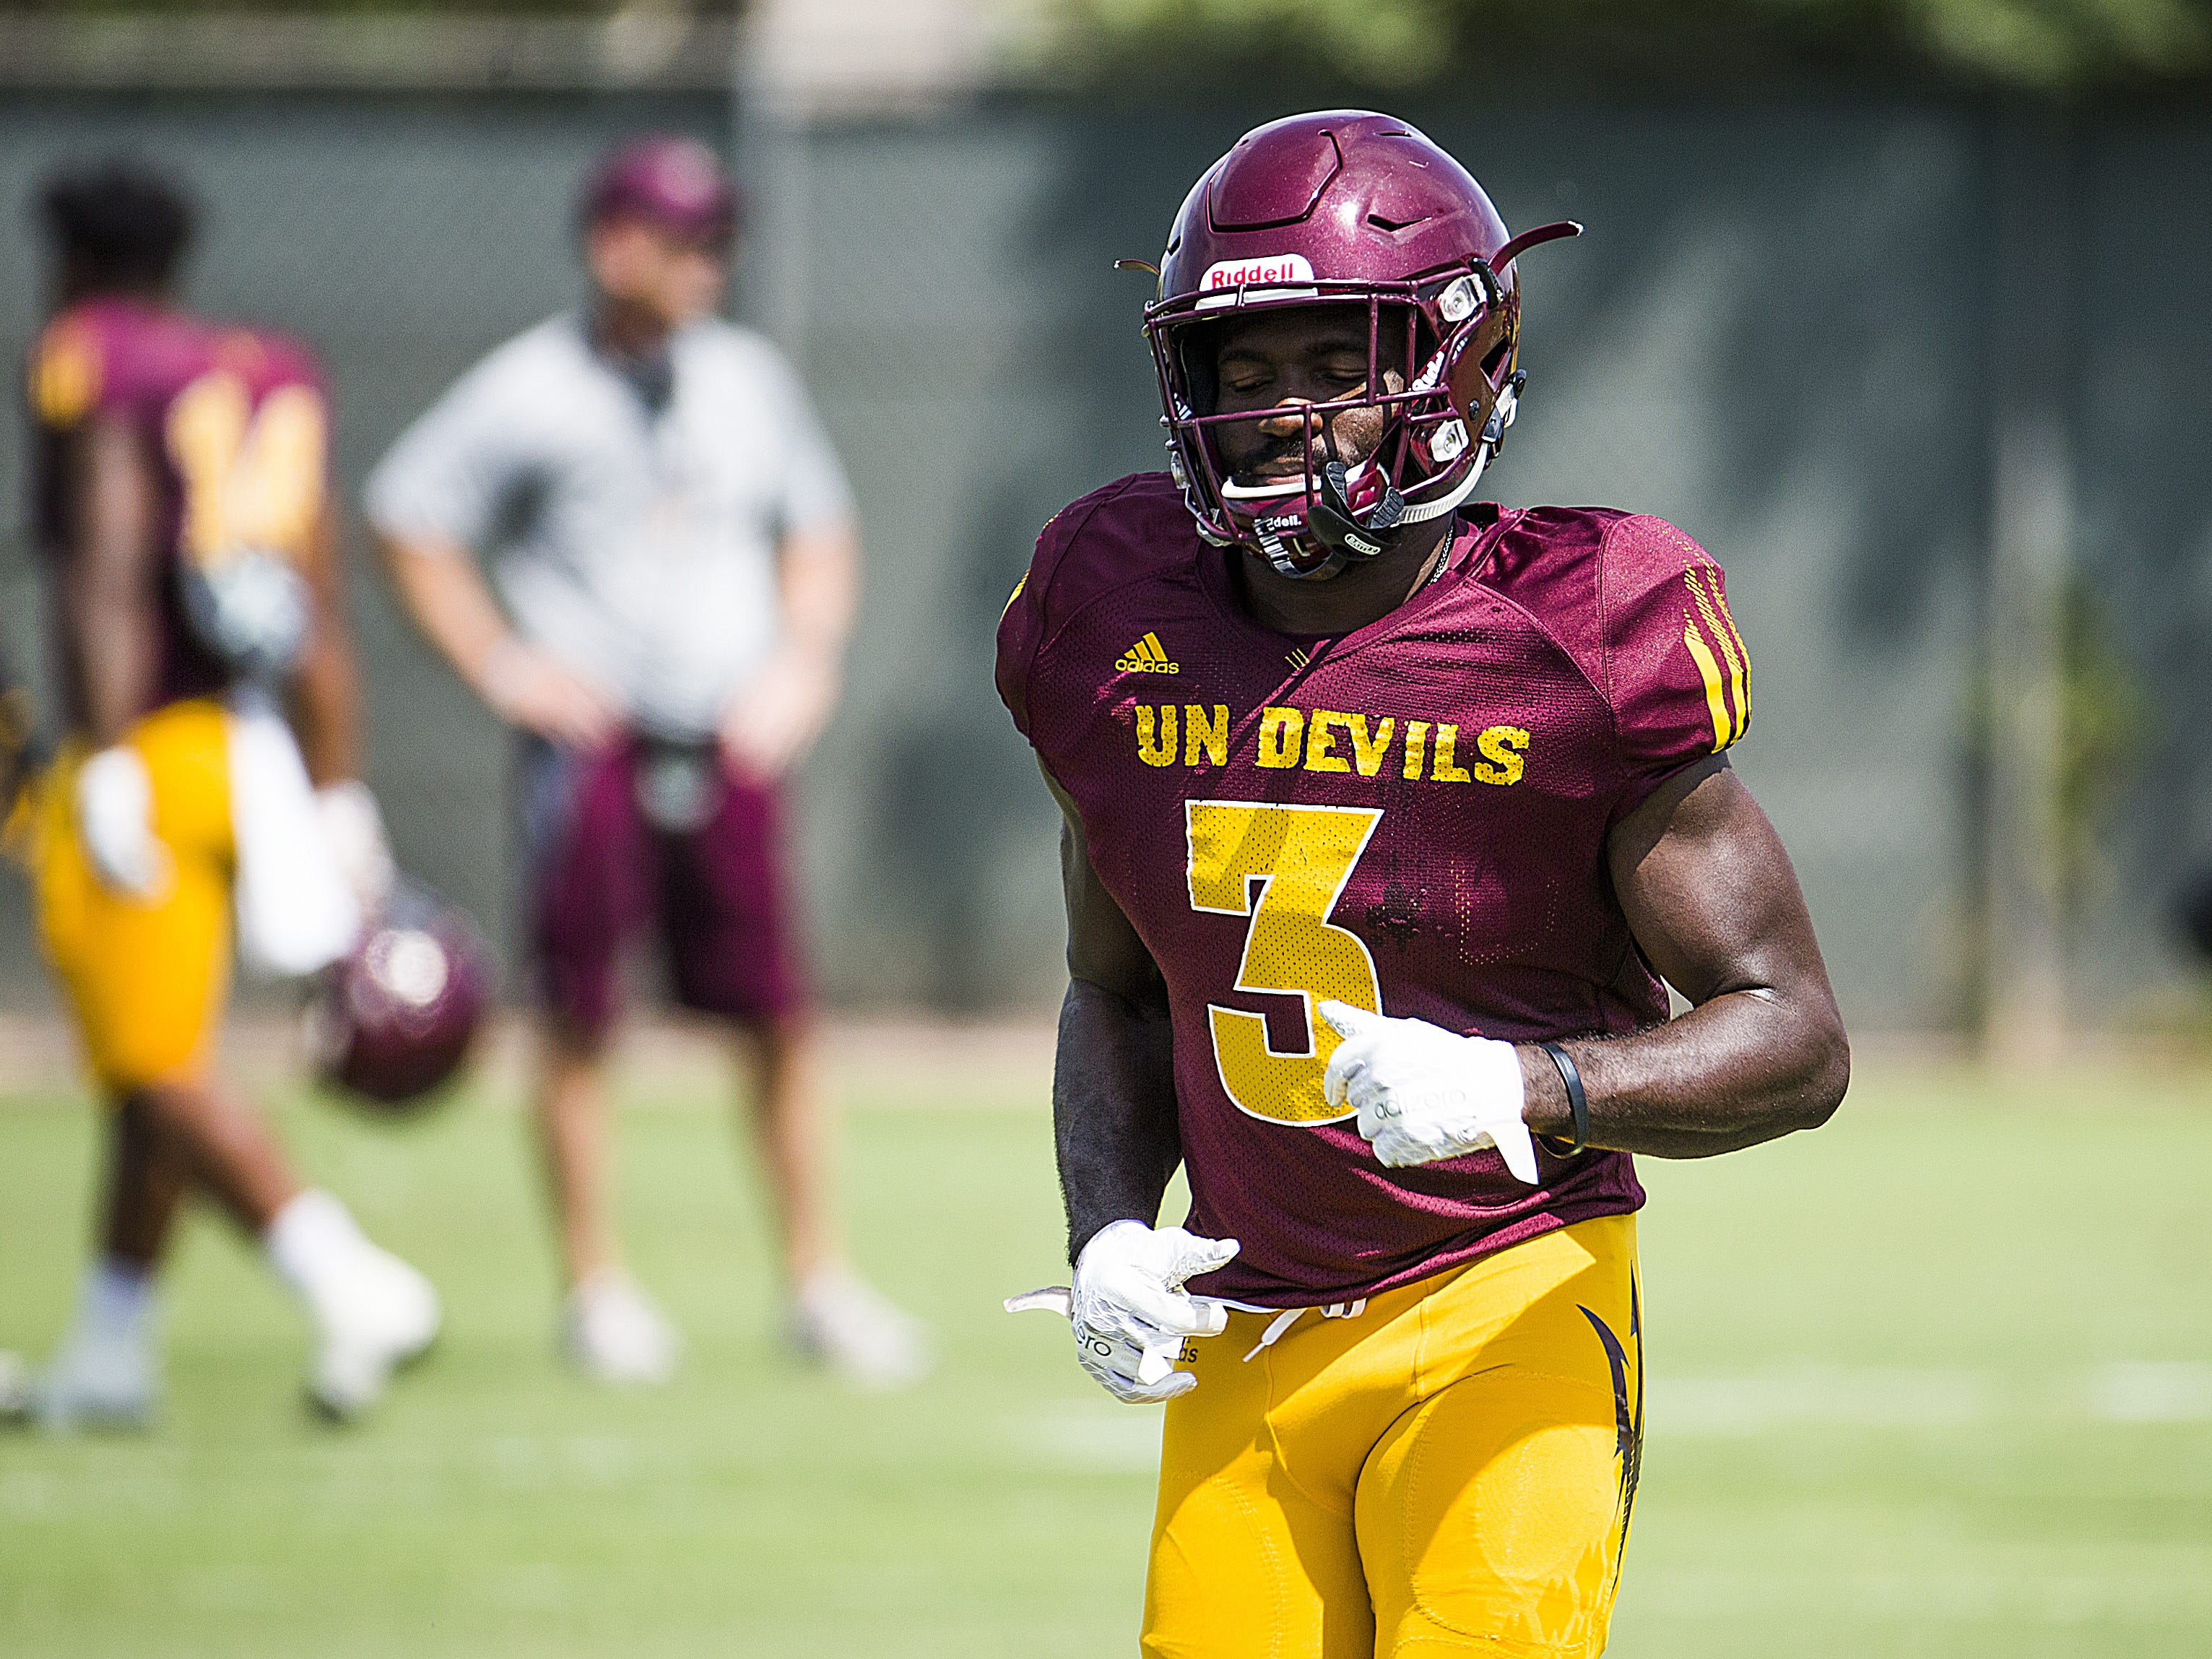 Arizona State University running back Eno Benjamin runs during practice in Tempe, Tuesday, August 21, 2018.